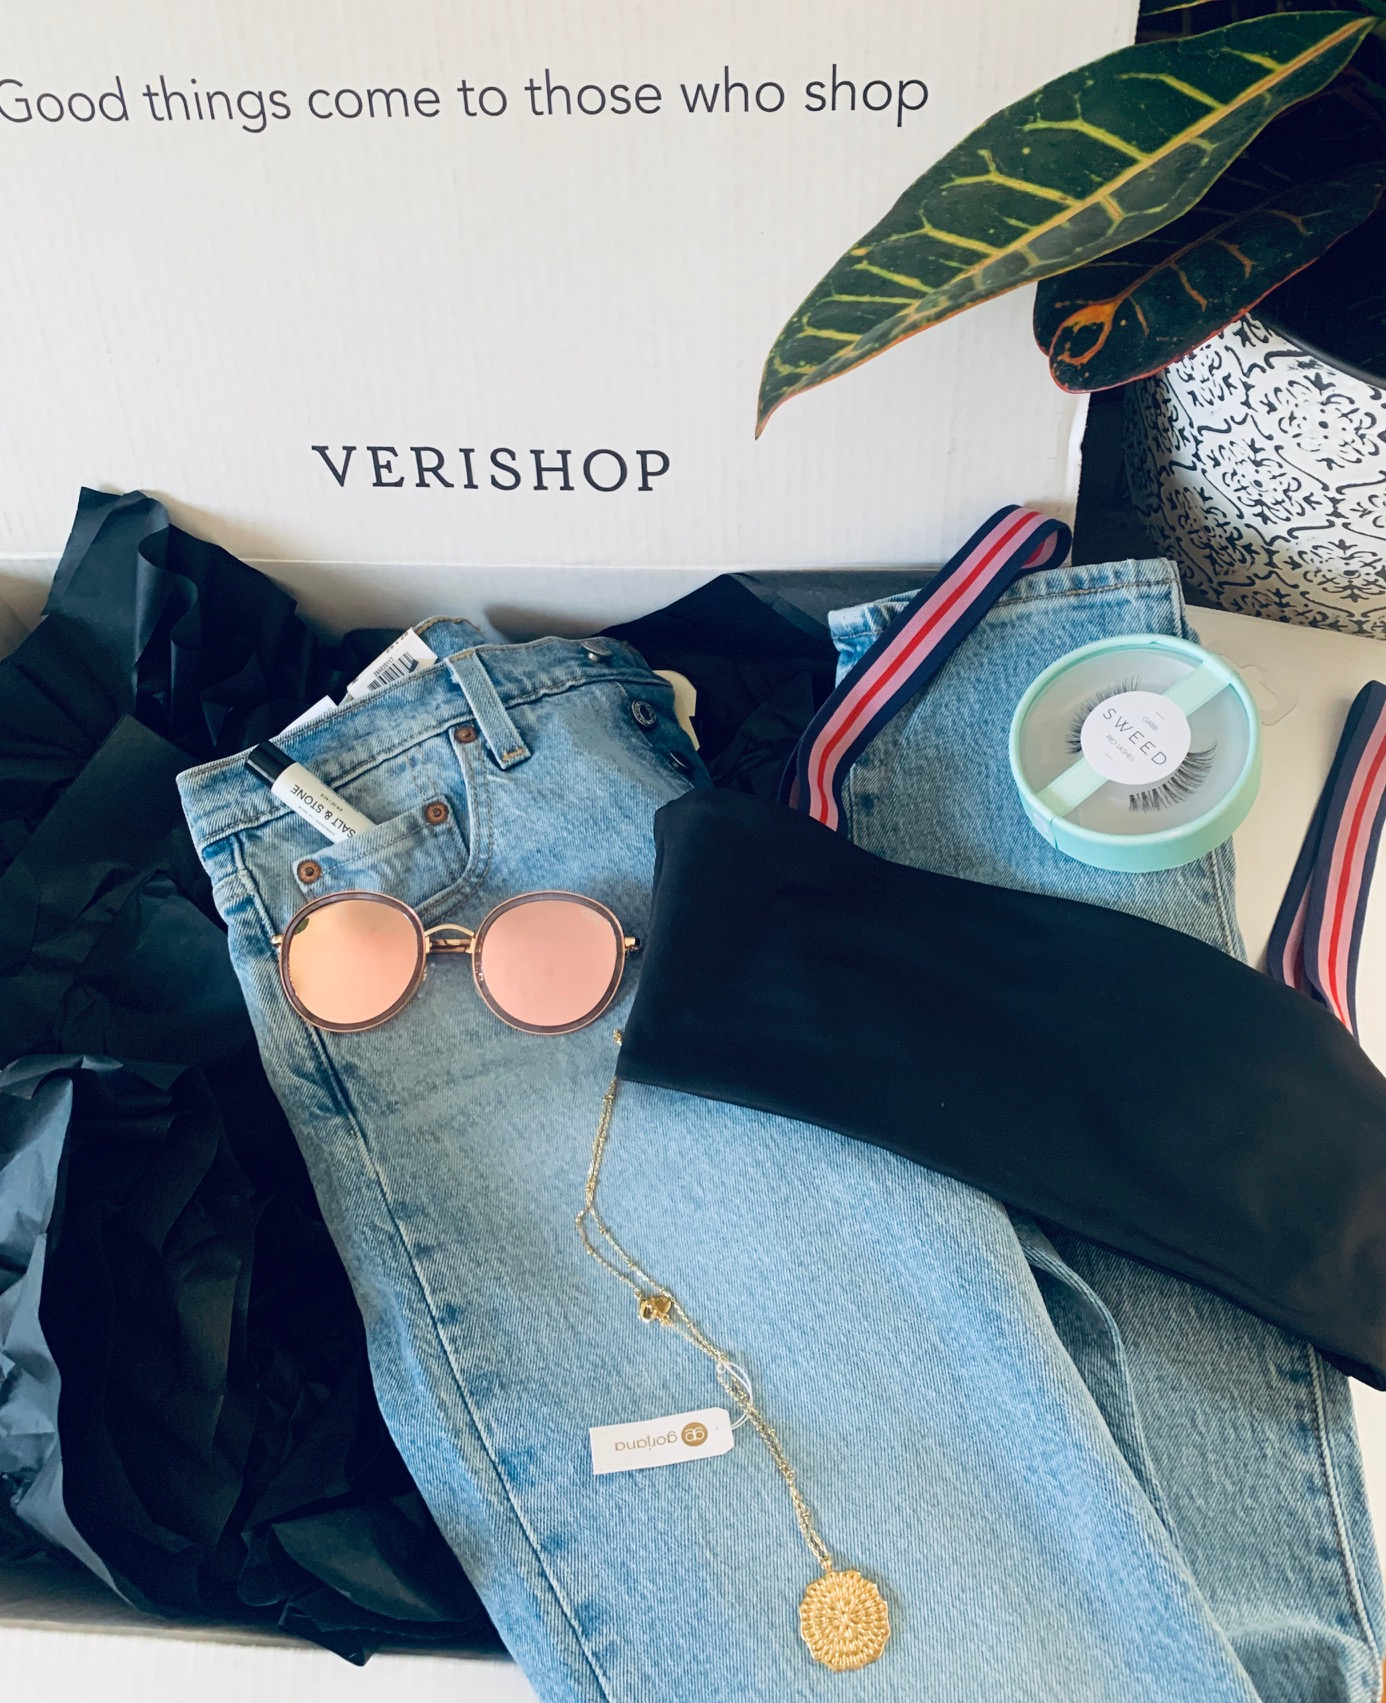 verishop review